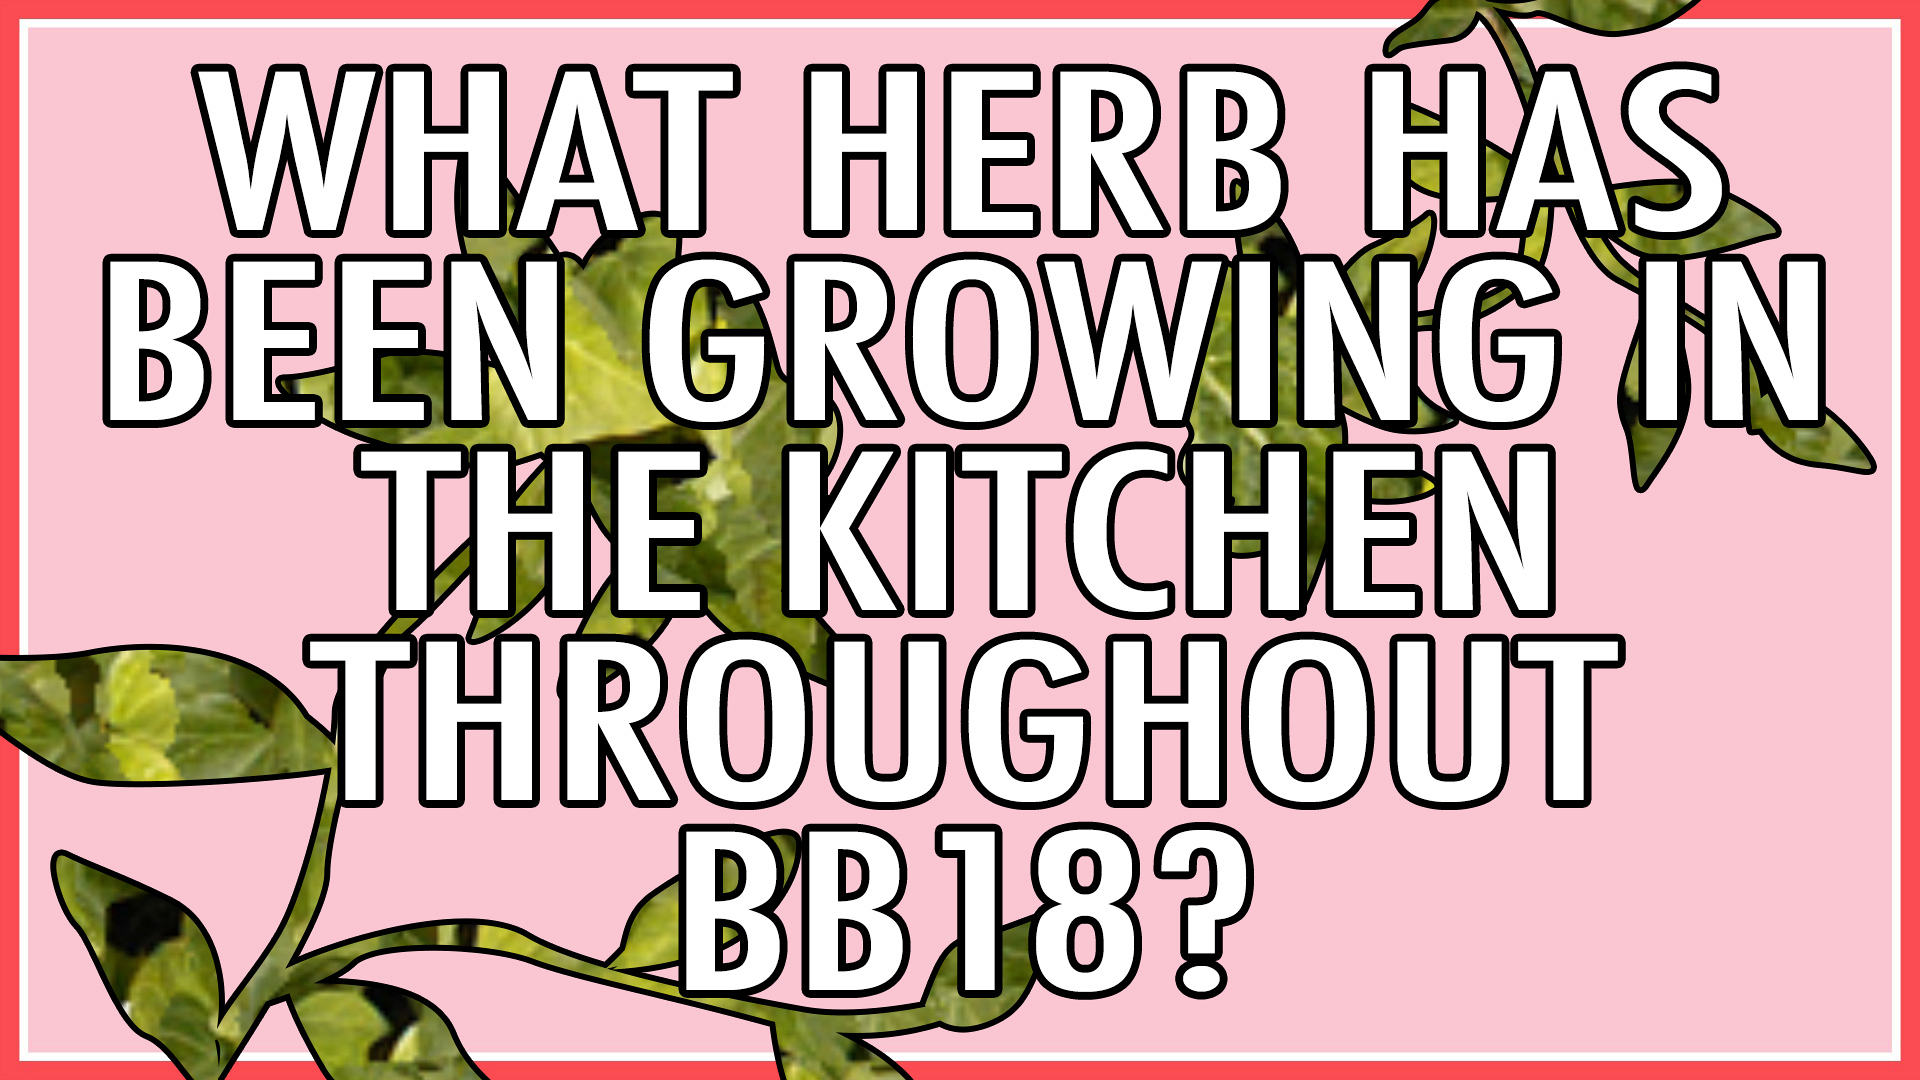 What herb has been growing in the kitchen throughout BB18?